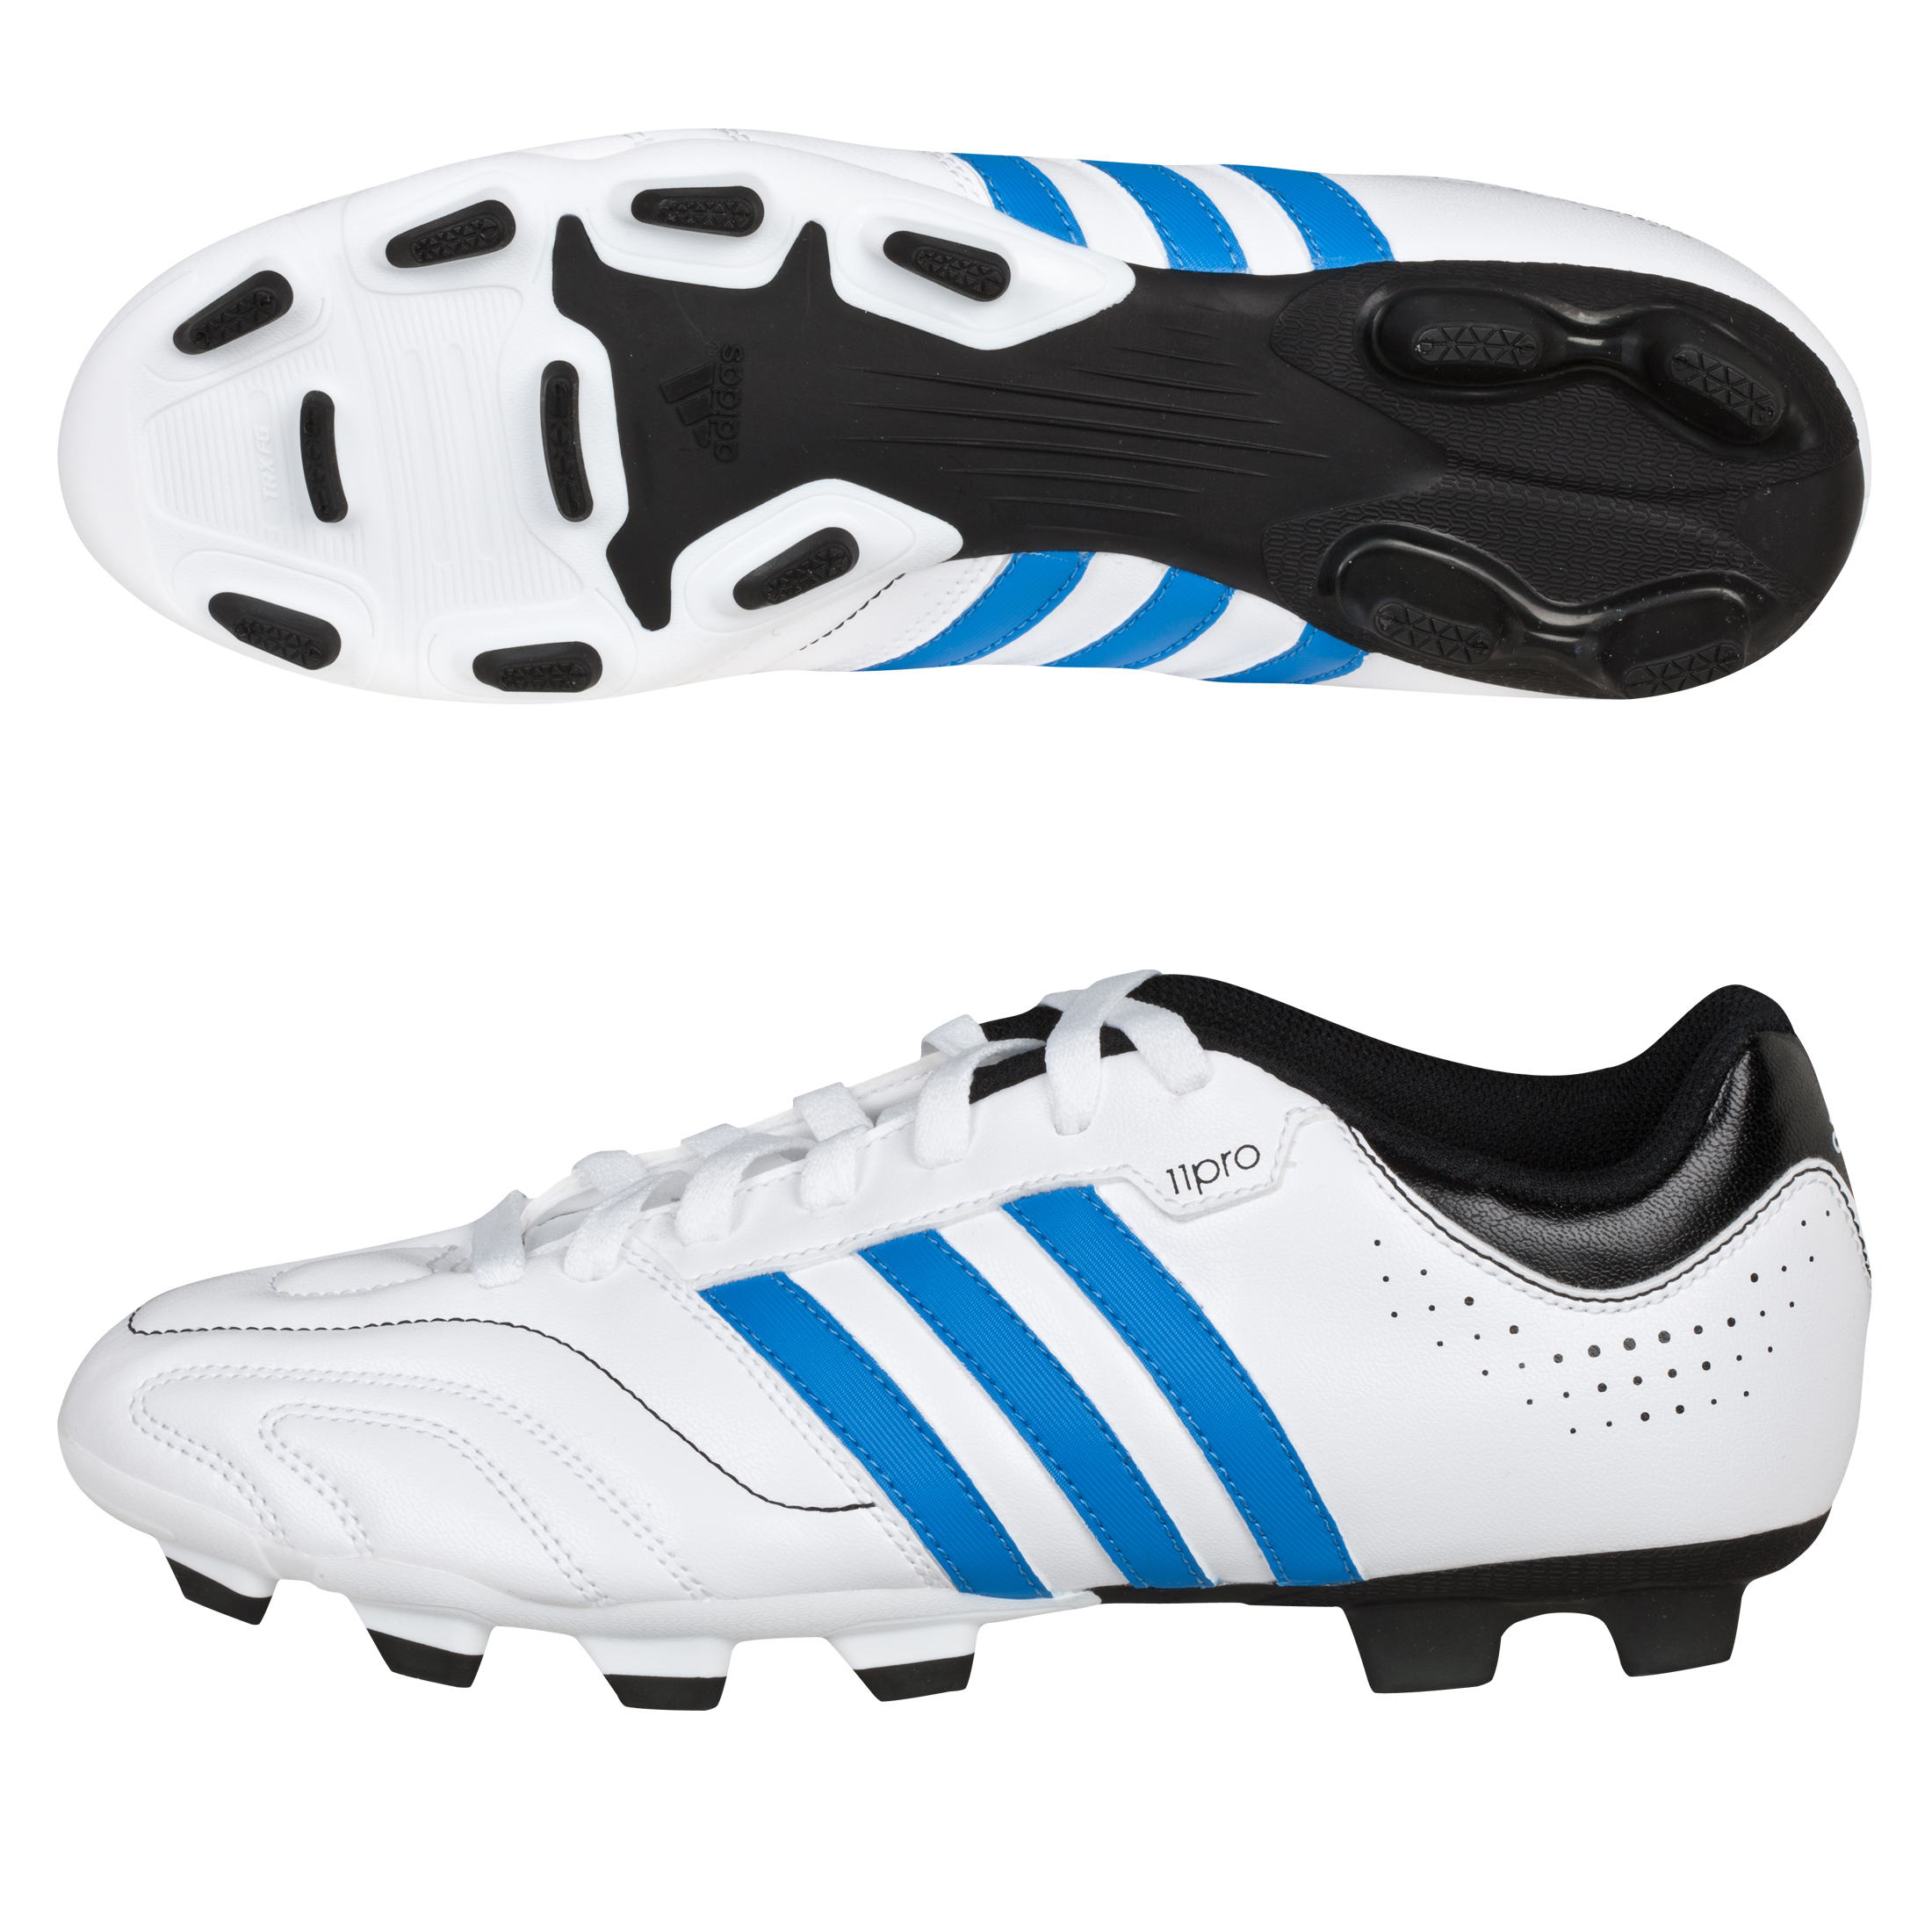 Adidas 11Questra TRX Firm Ground Football Boots - White/Bright Blue/Black